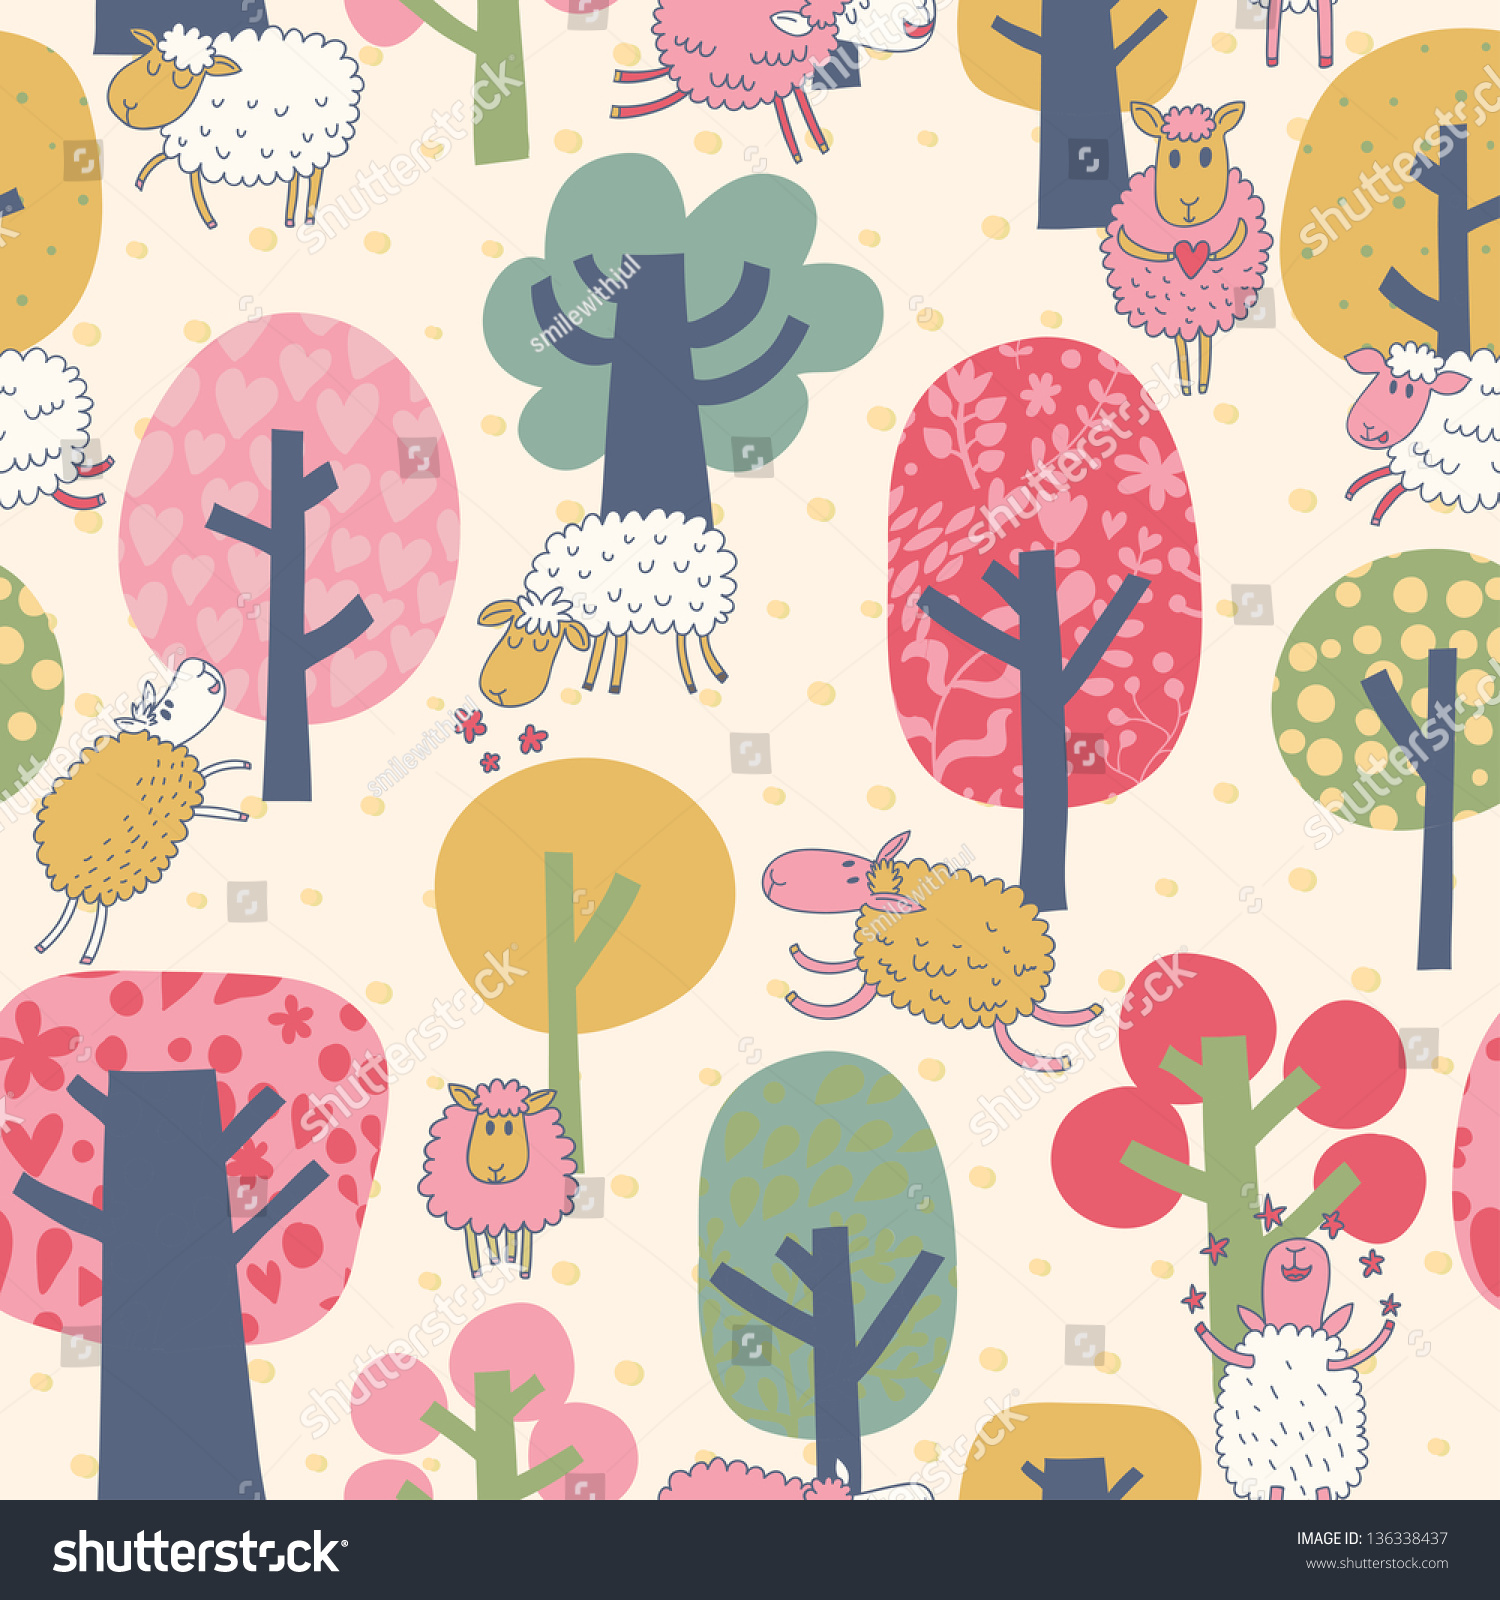 Bright Background With Sheep And Trees Cartoon Summer WallpaperSeamless Pattern Can Be Used